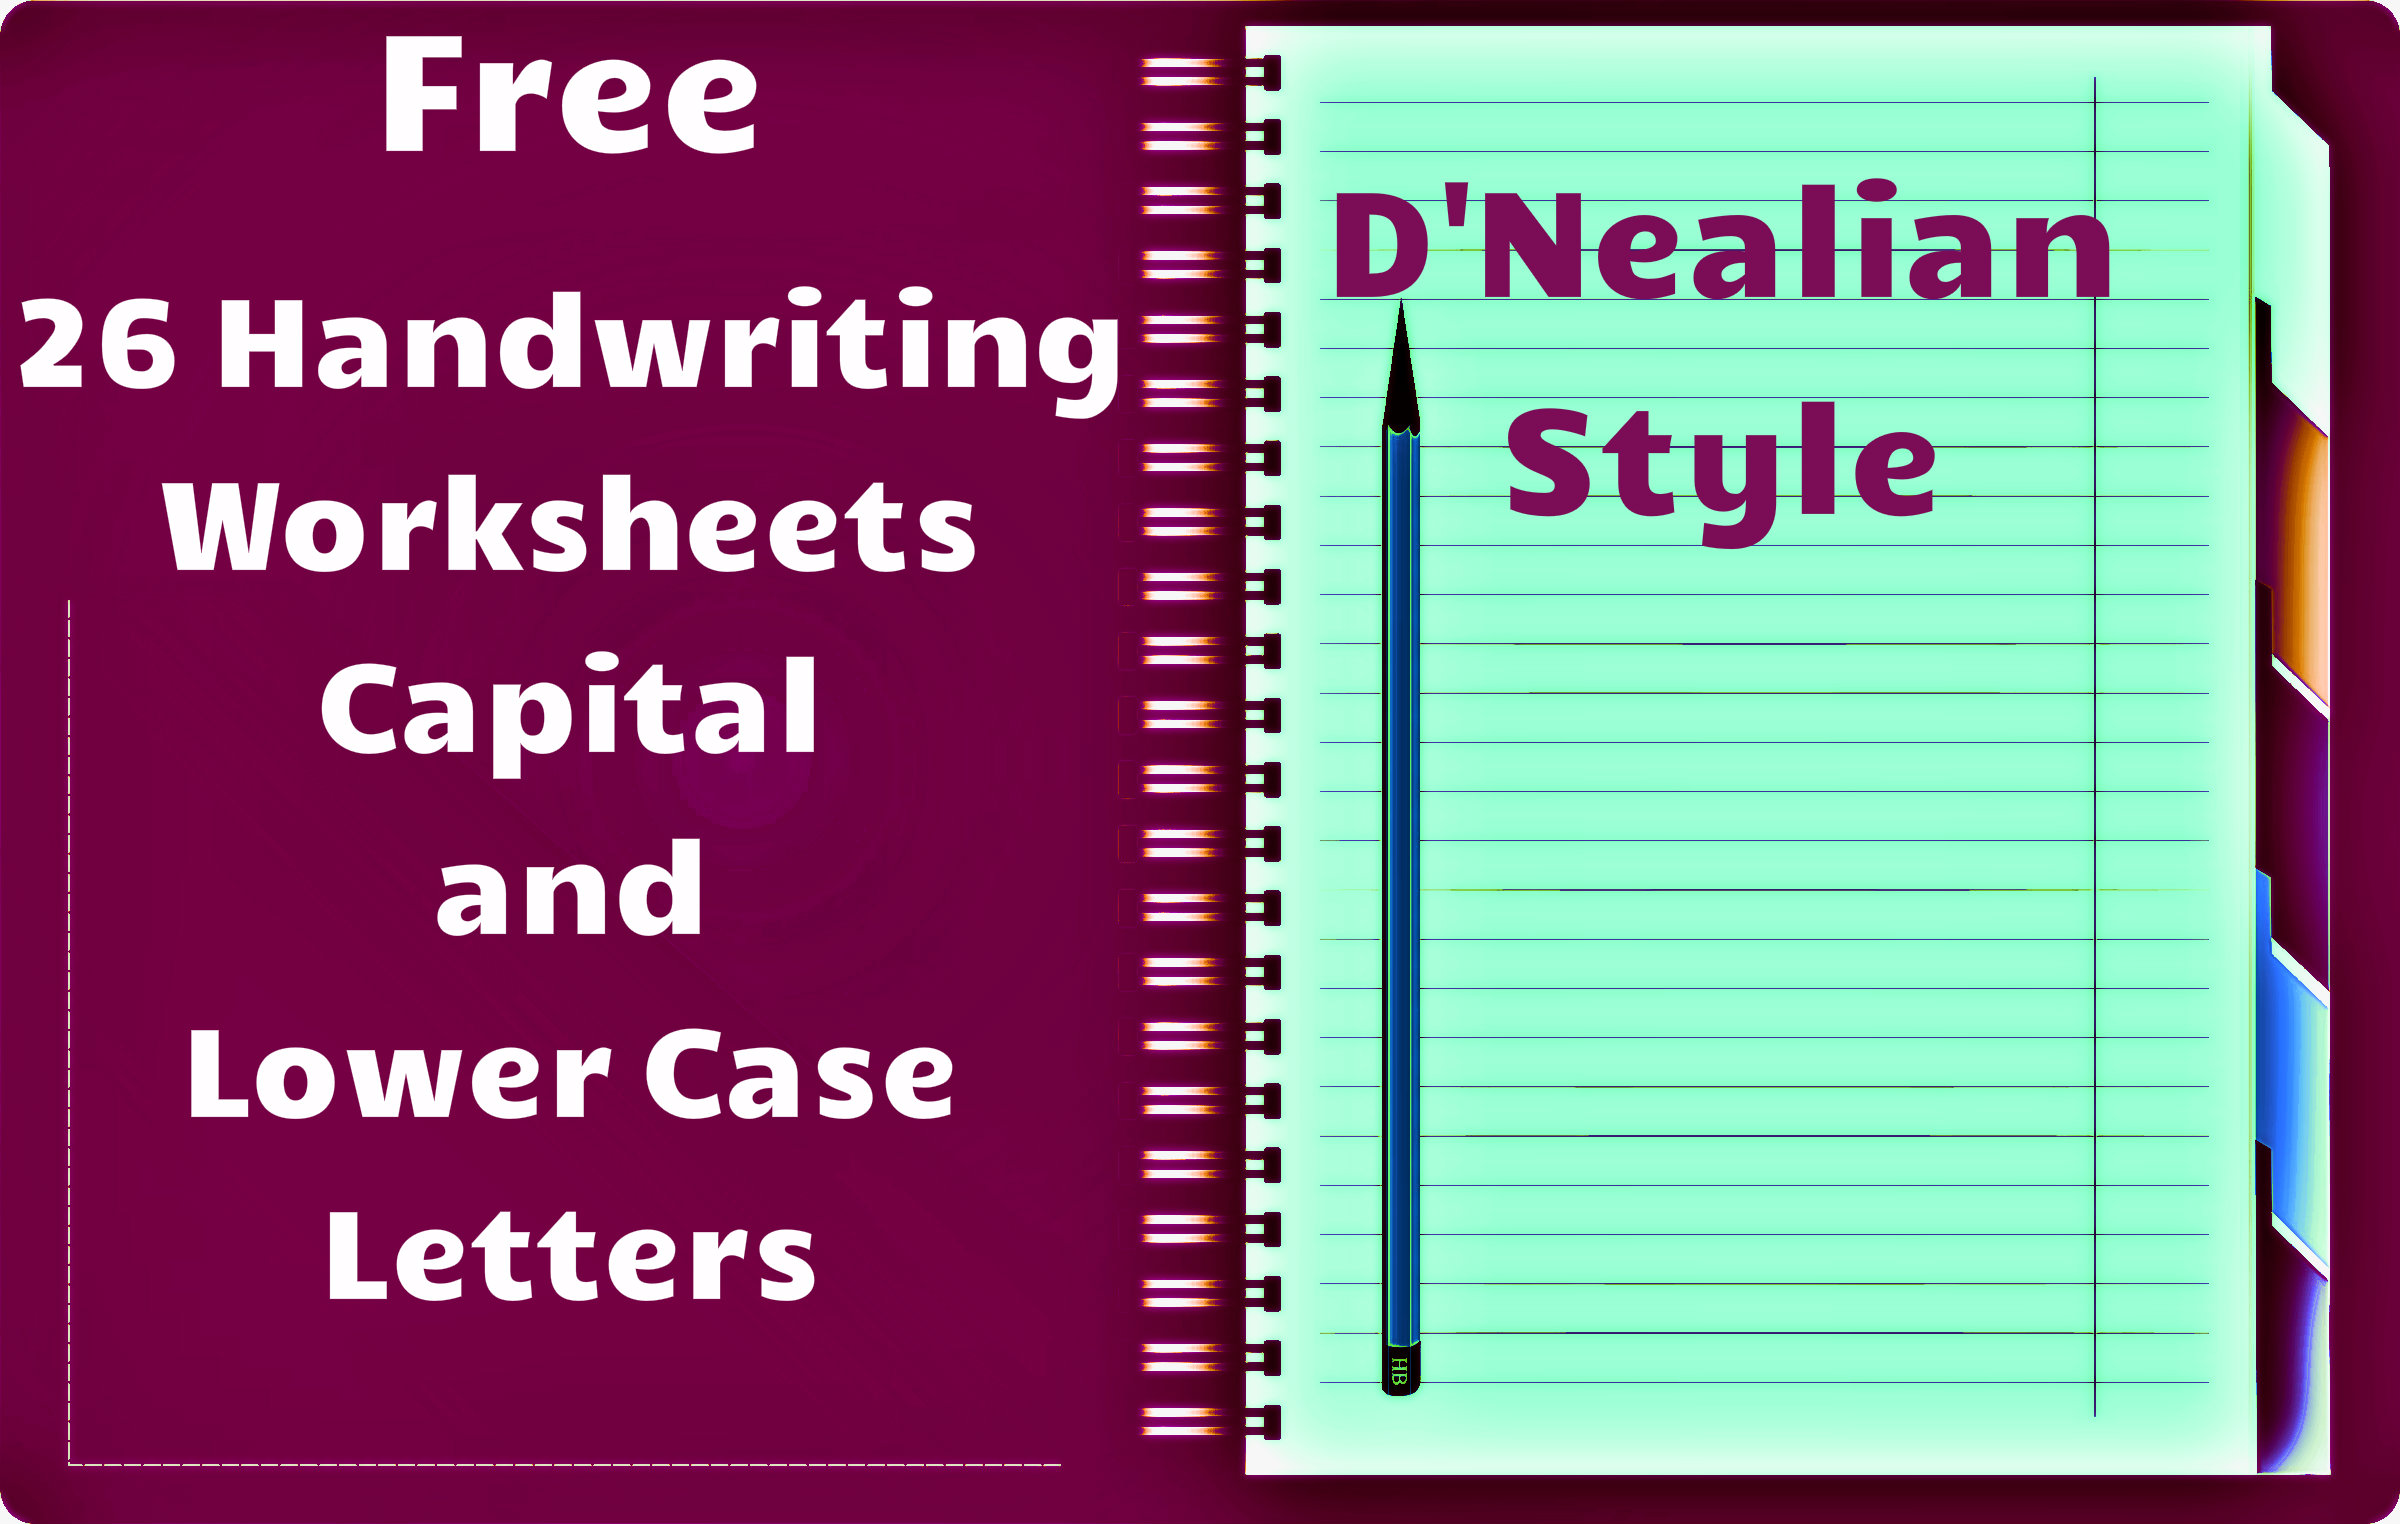 Worksheets Free Handwriting Worksheet Maker free handwriting worksheets dnealian style